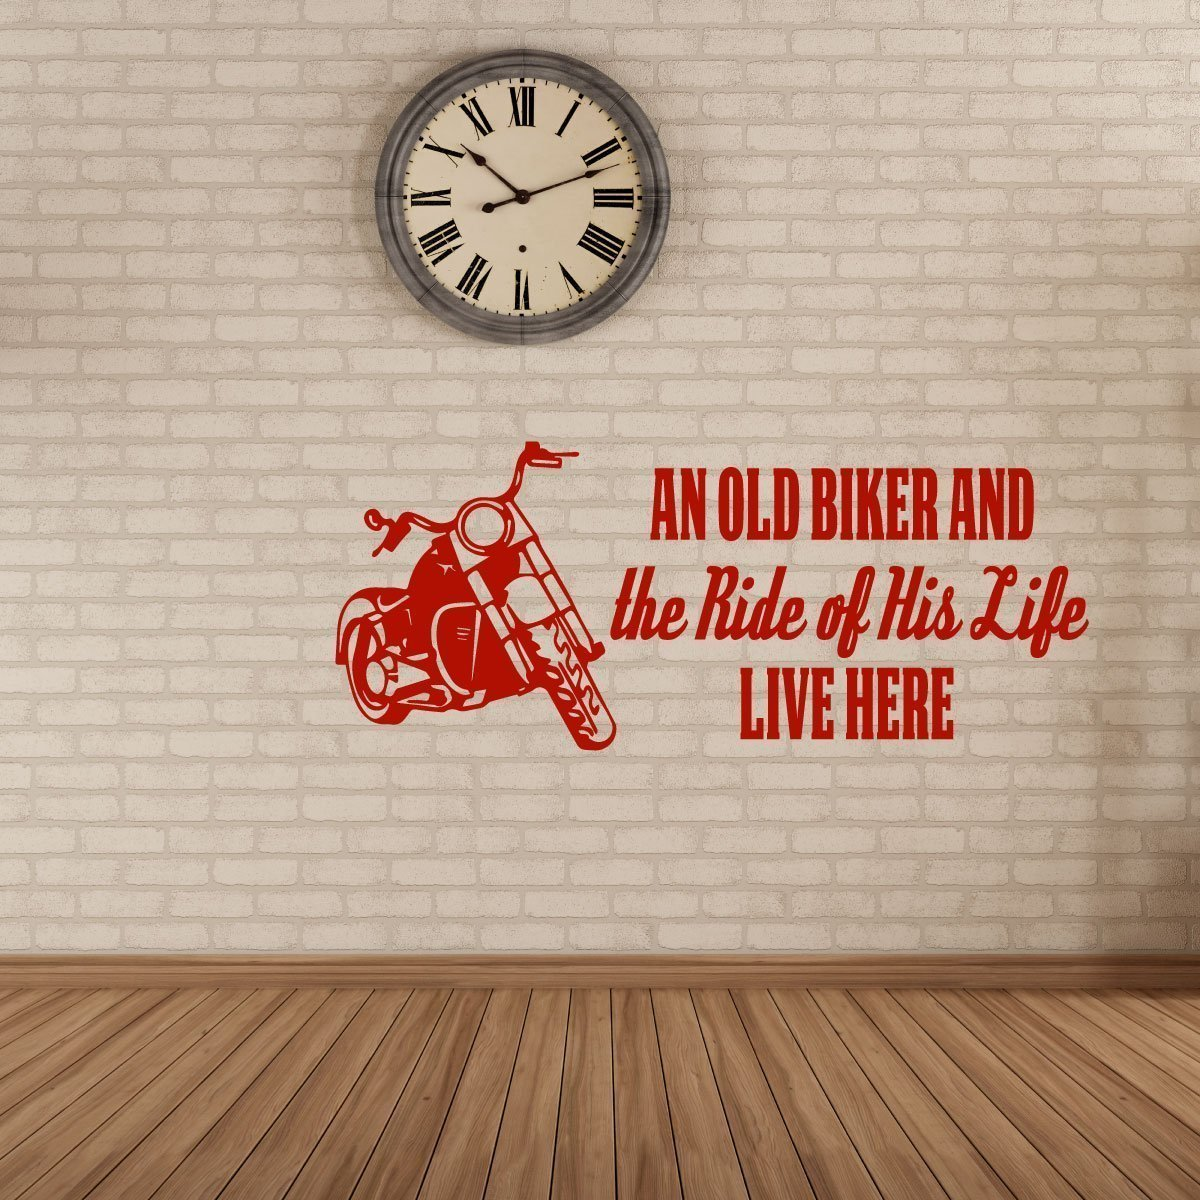 "Harley Davidson Vinyl Decals ""The Ride Of His Life"" With Motorcycle Image For Home Decor"